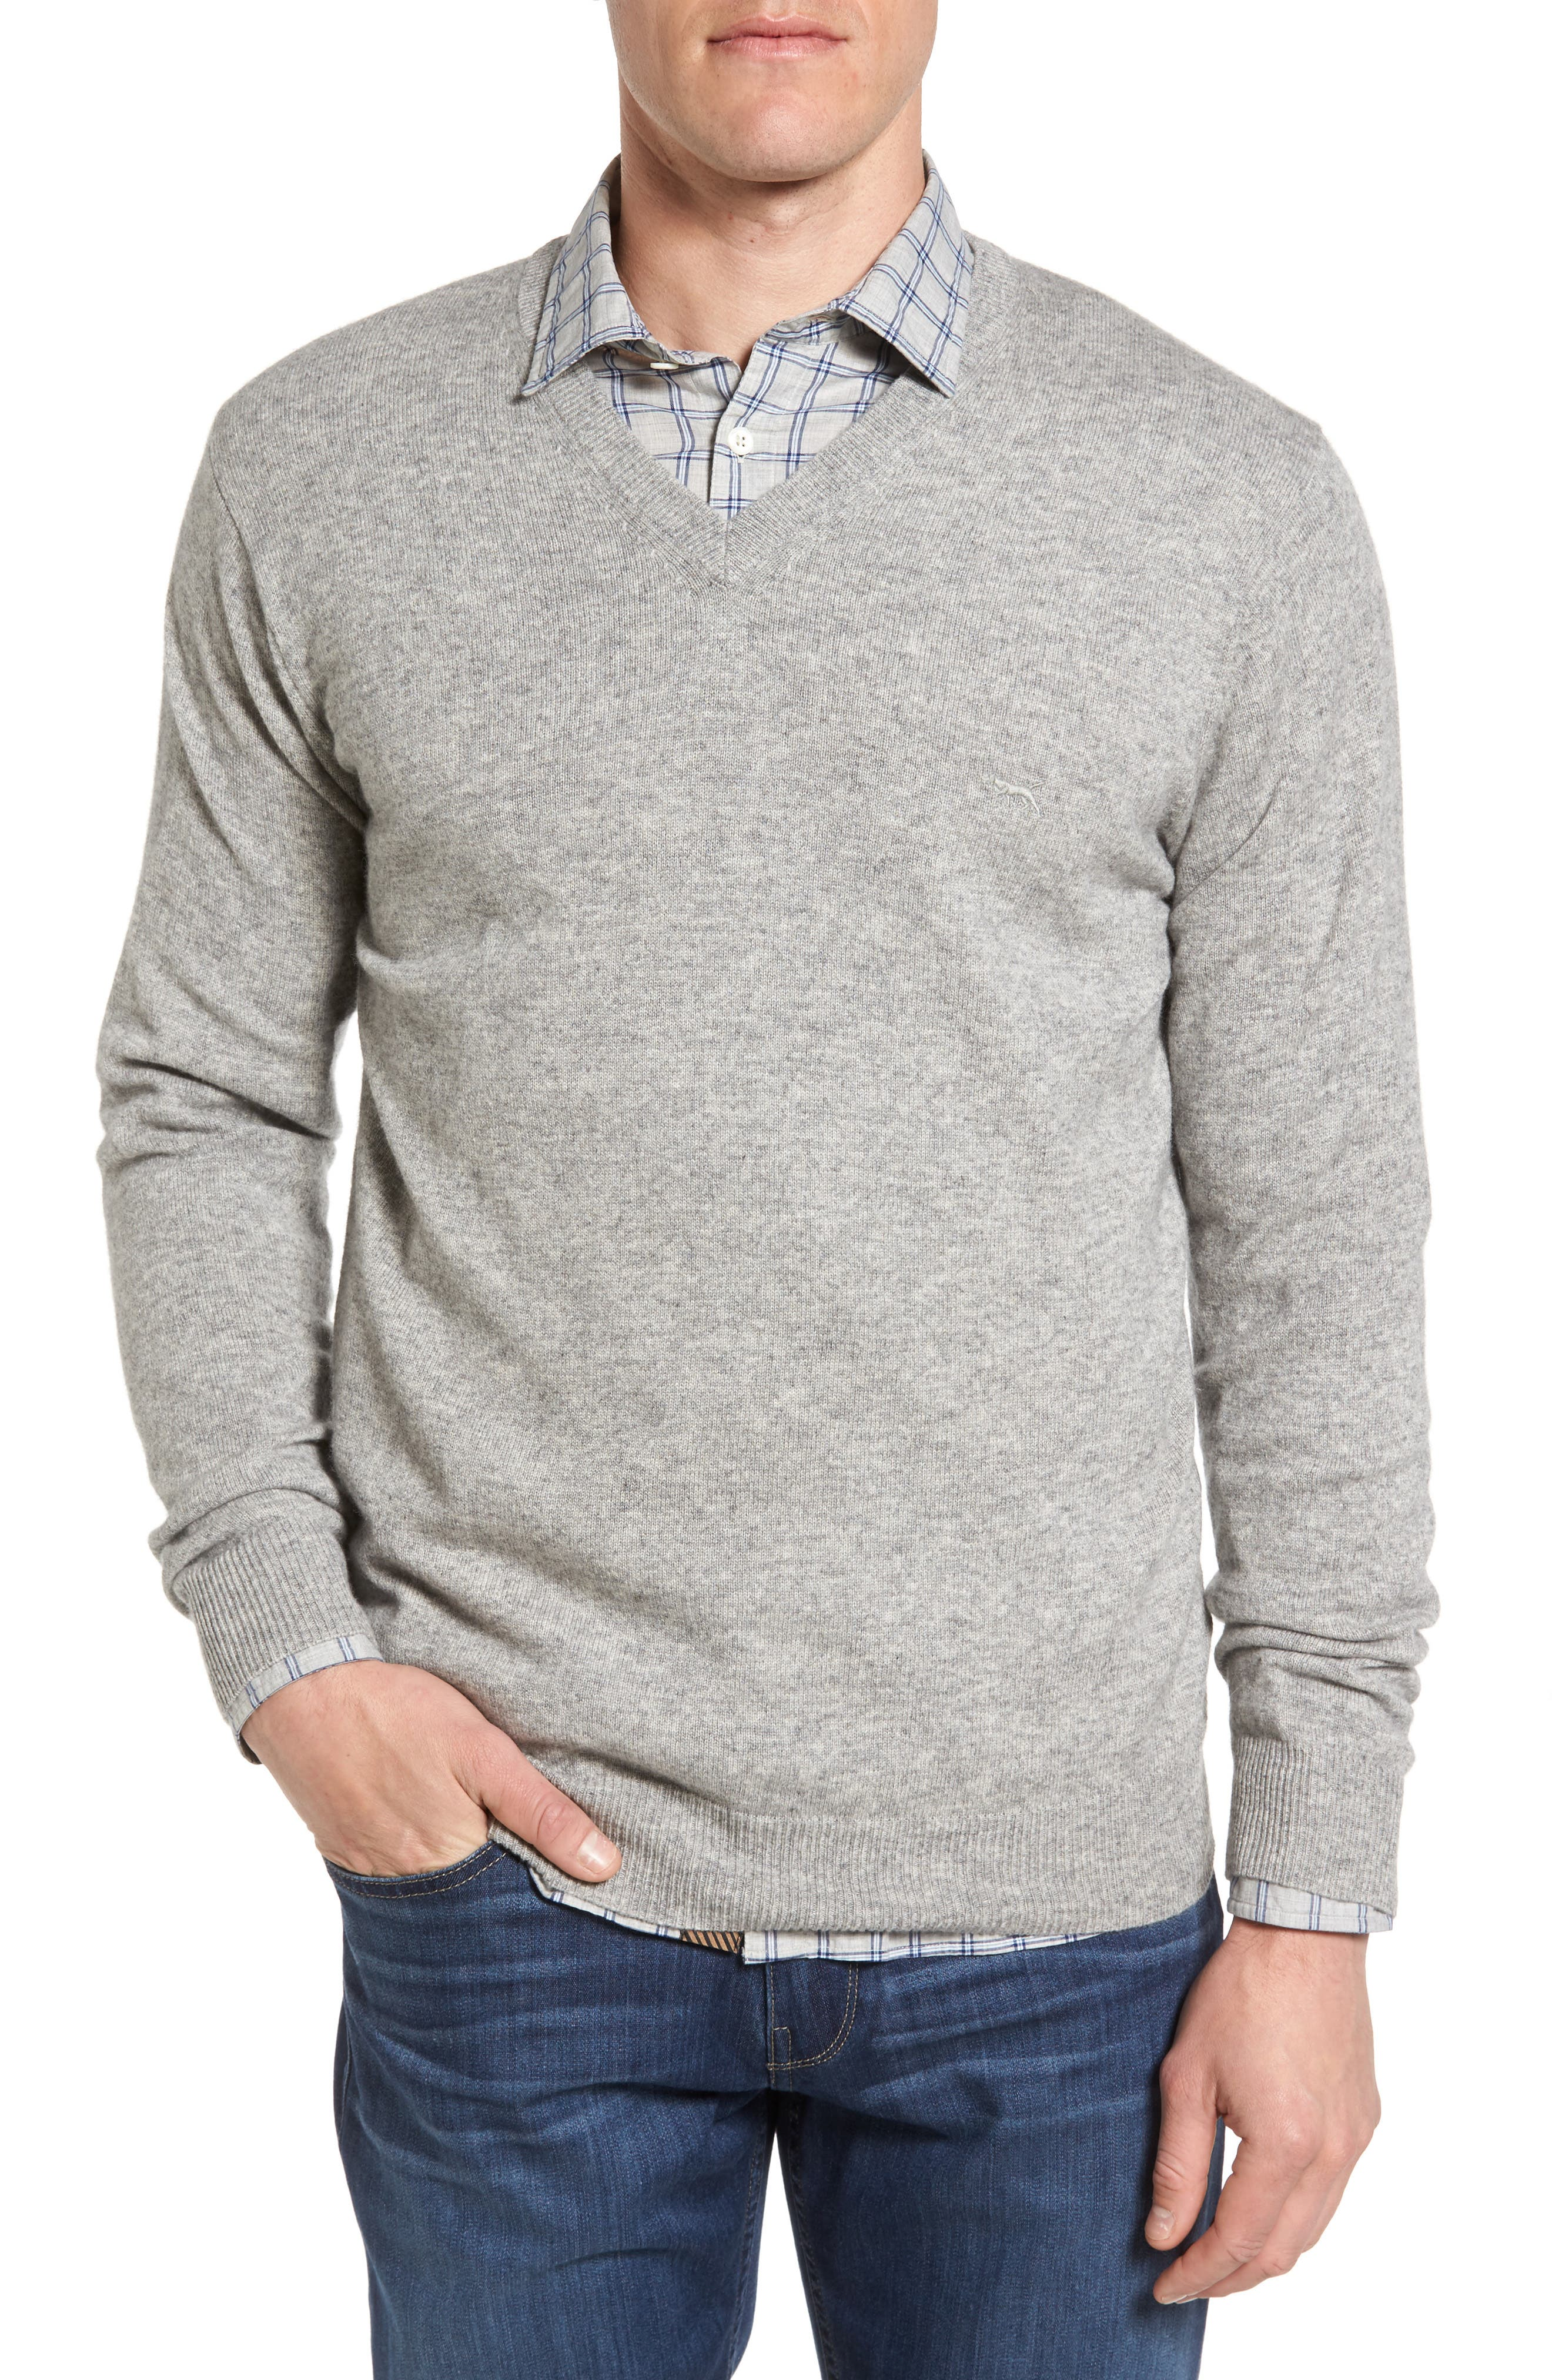 'Inchbonnie' Wool & Cashmere V-Neck Sweater,                             Main thumbnail 1, color,                             020